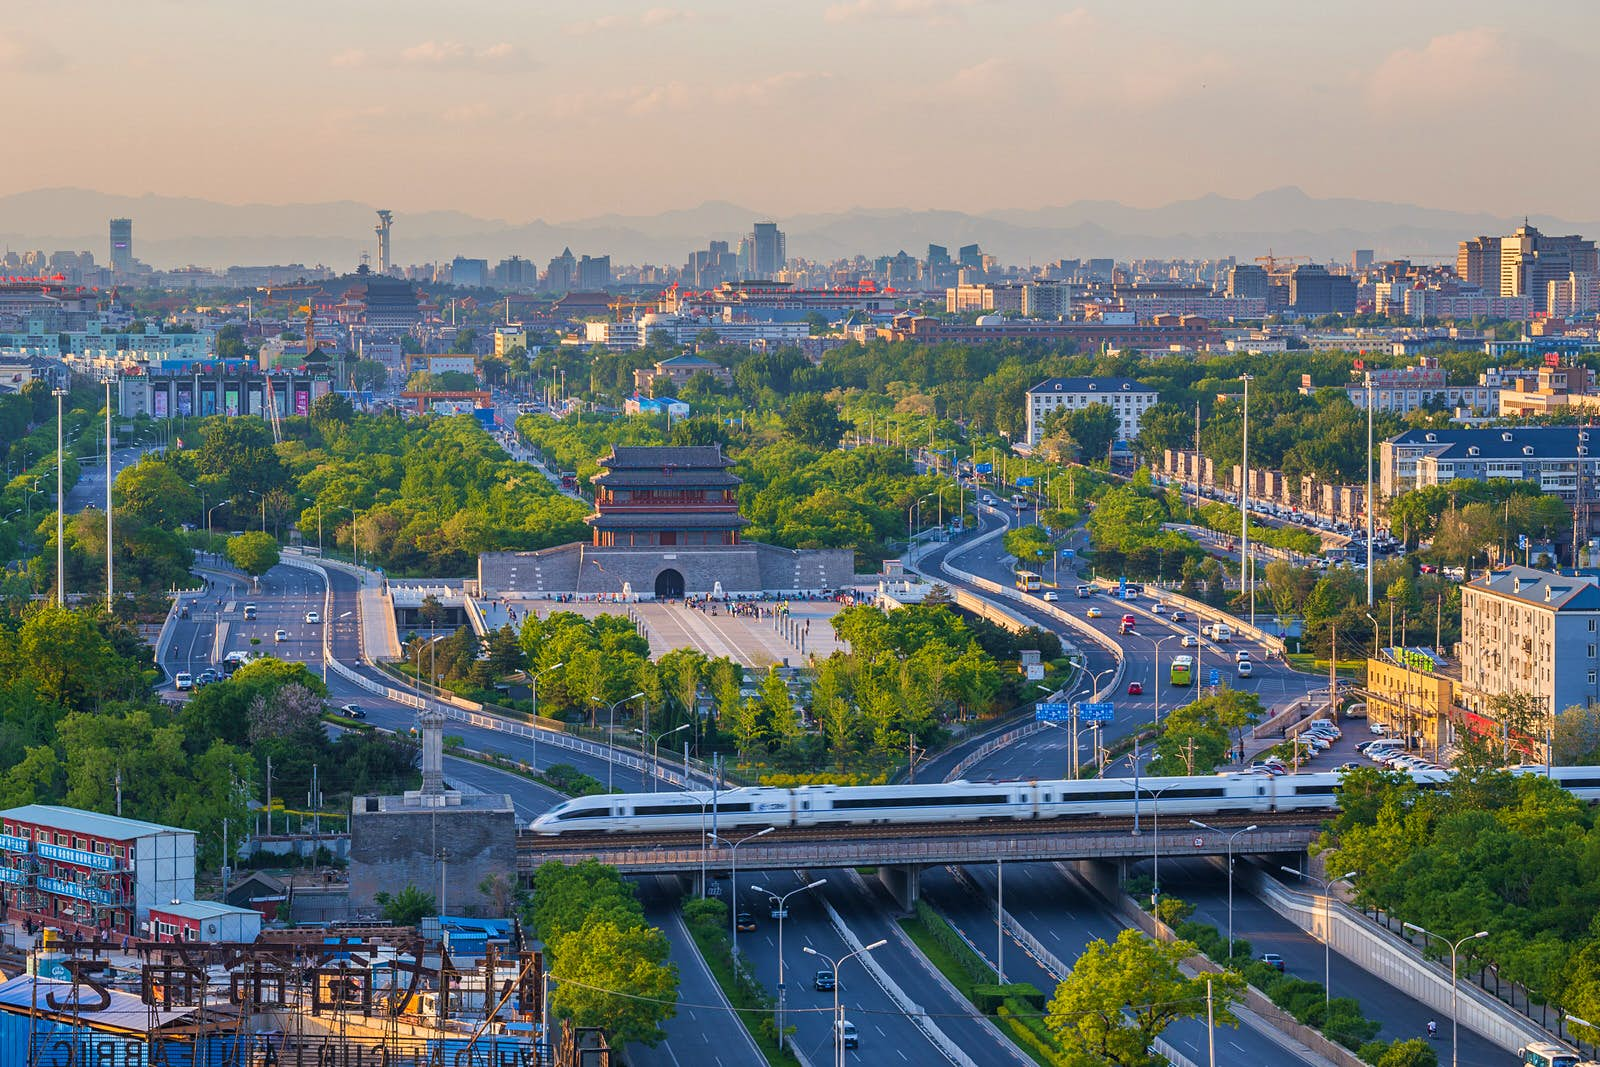 A high-speed train passes Beijing's Yongding Gate before zipping passengers across the country © ViewStock / Getty